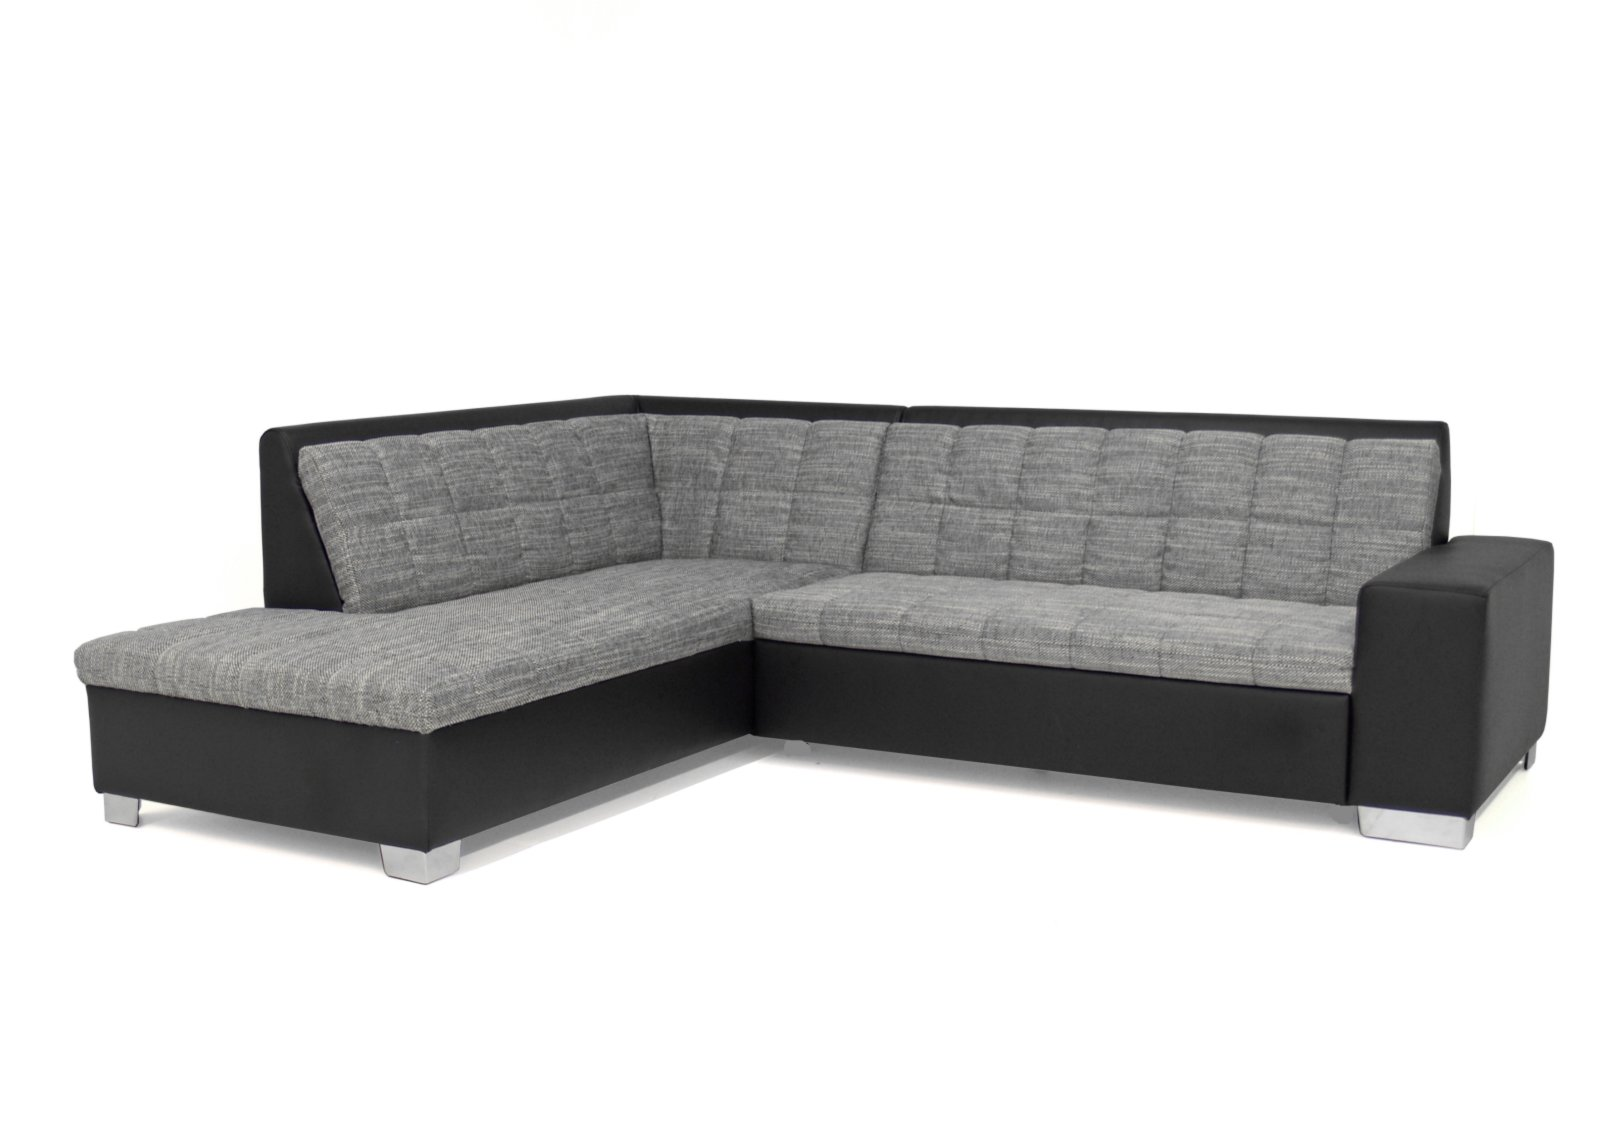 leder sofas mit ottomane links preisvergleiche. Black Bedroom Furniture Sets. Home Design Ideas